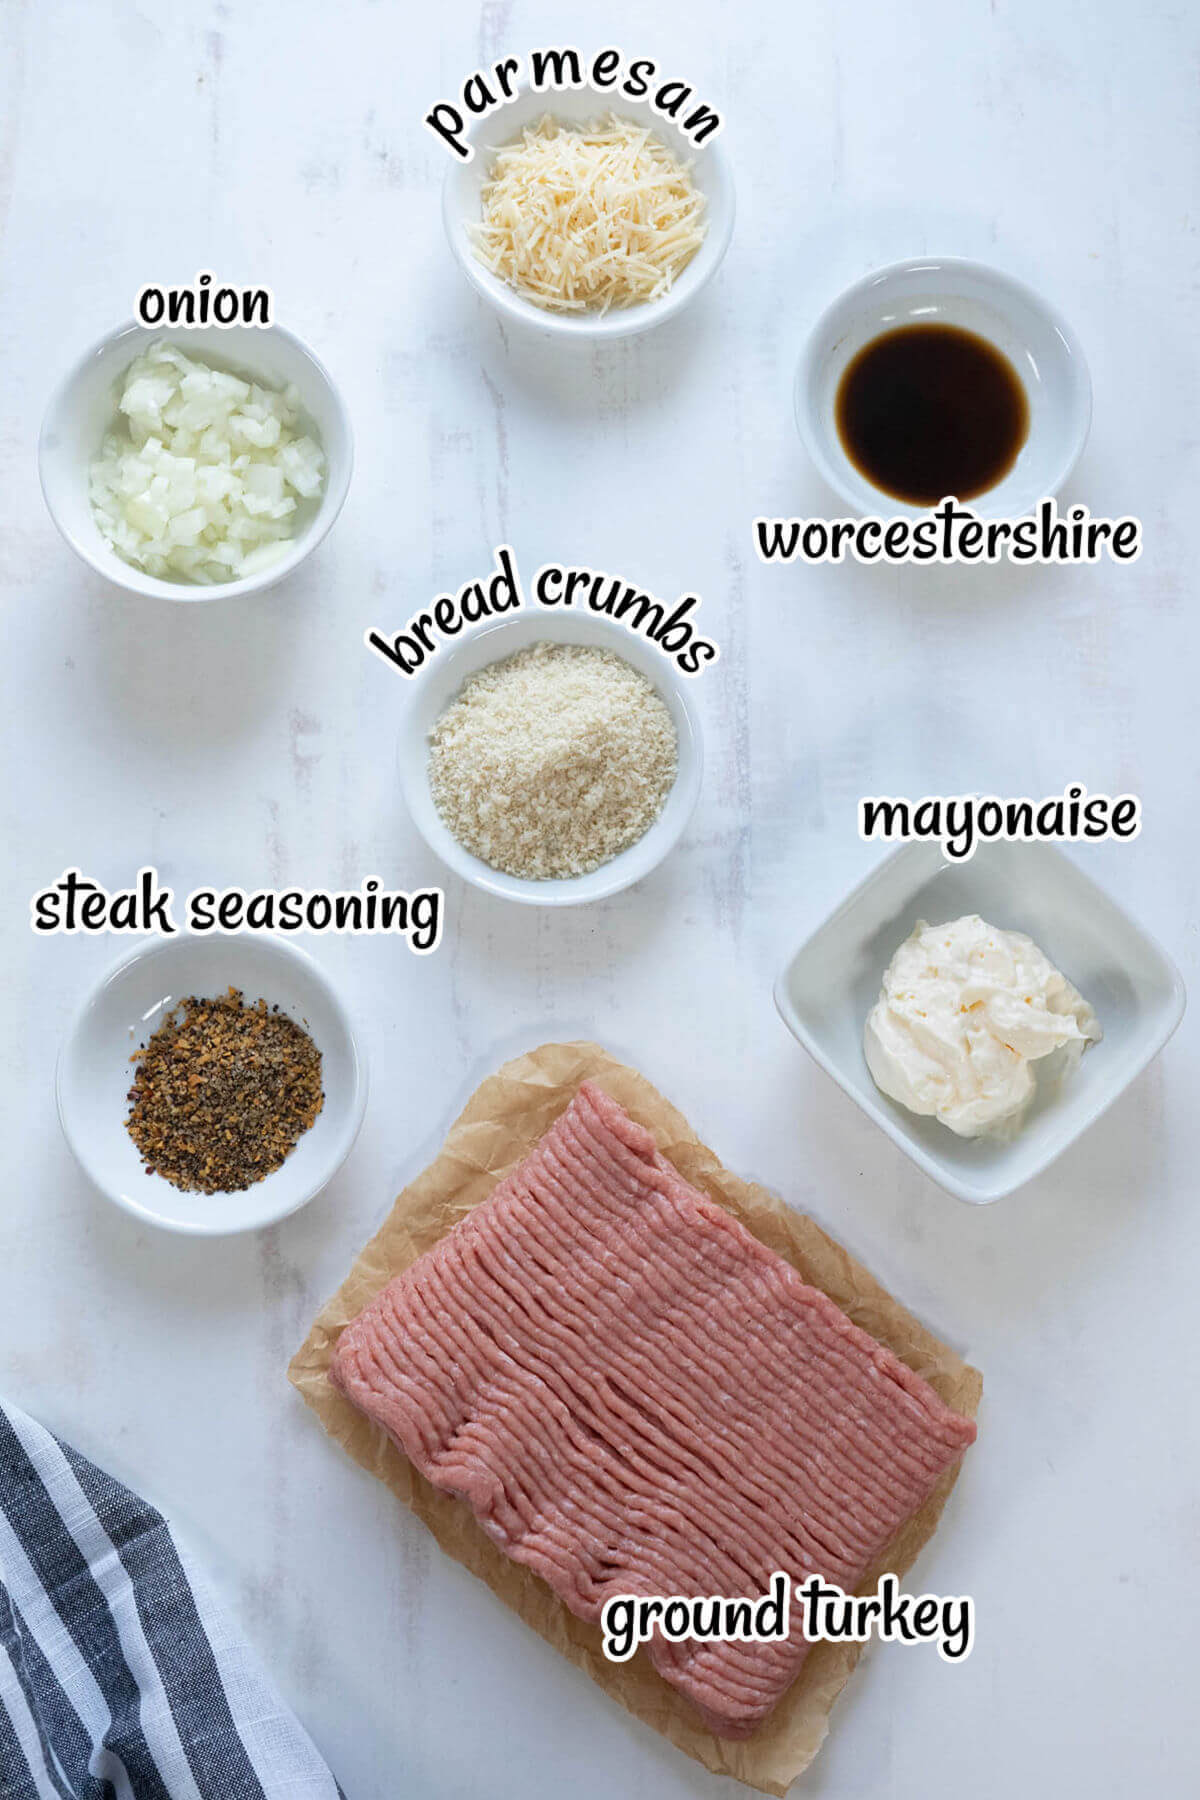 All of the ingredients needed to make grilled turkey burgers laid out on board. With print overlay.